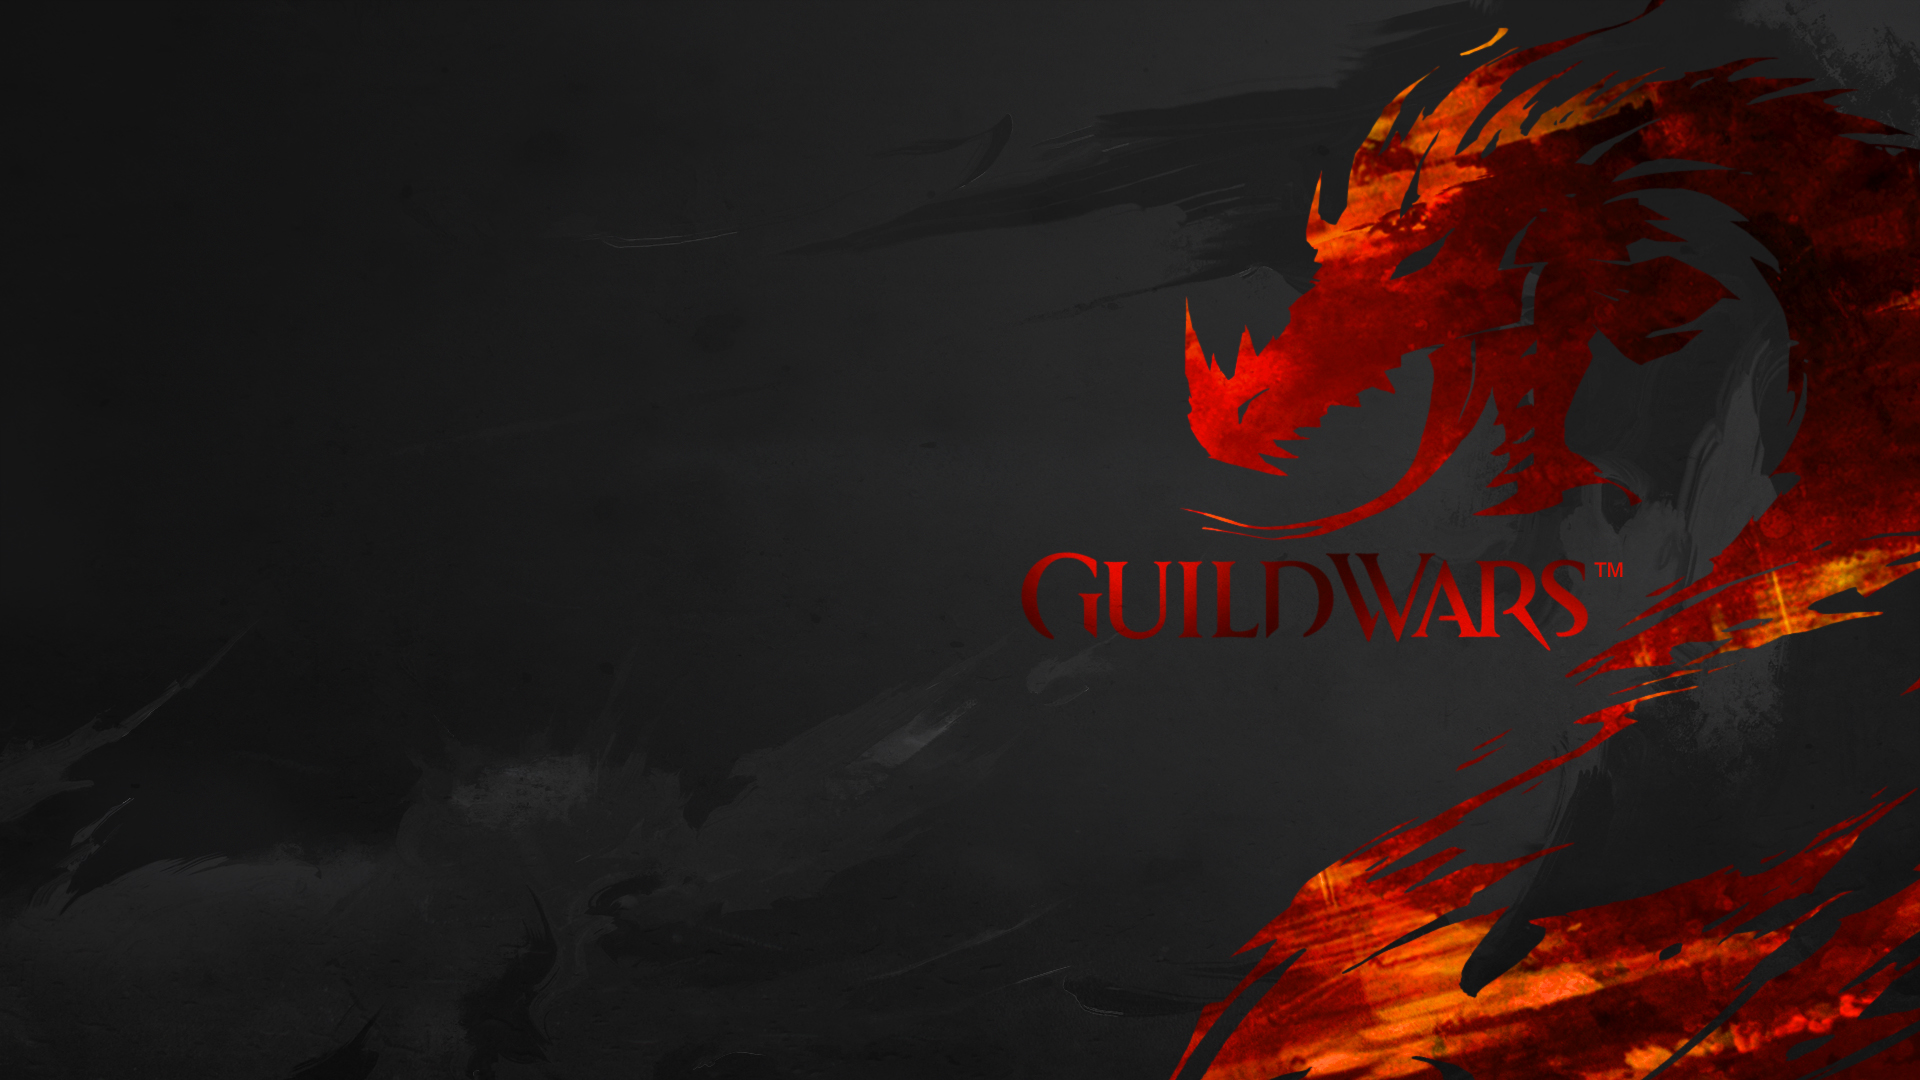 Guild Wars 2 Full Hd Wallpaper And Background Image: Guildwars 2 Wallpaper